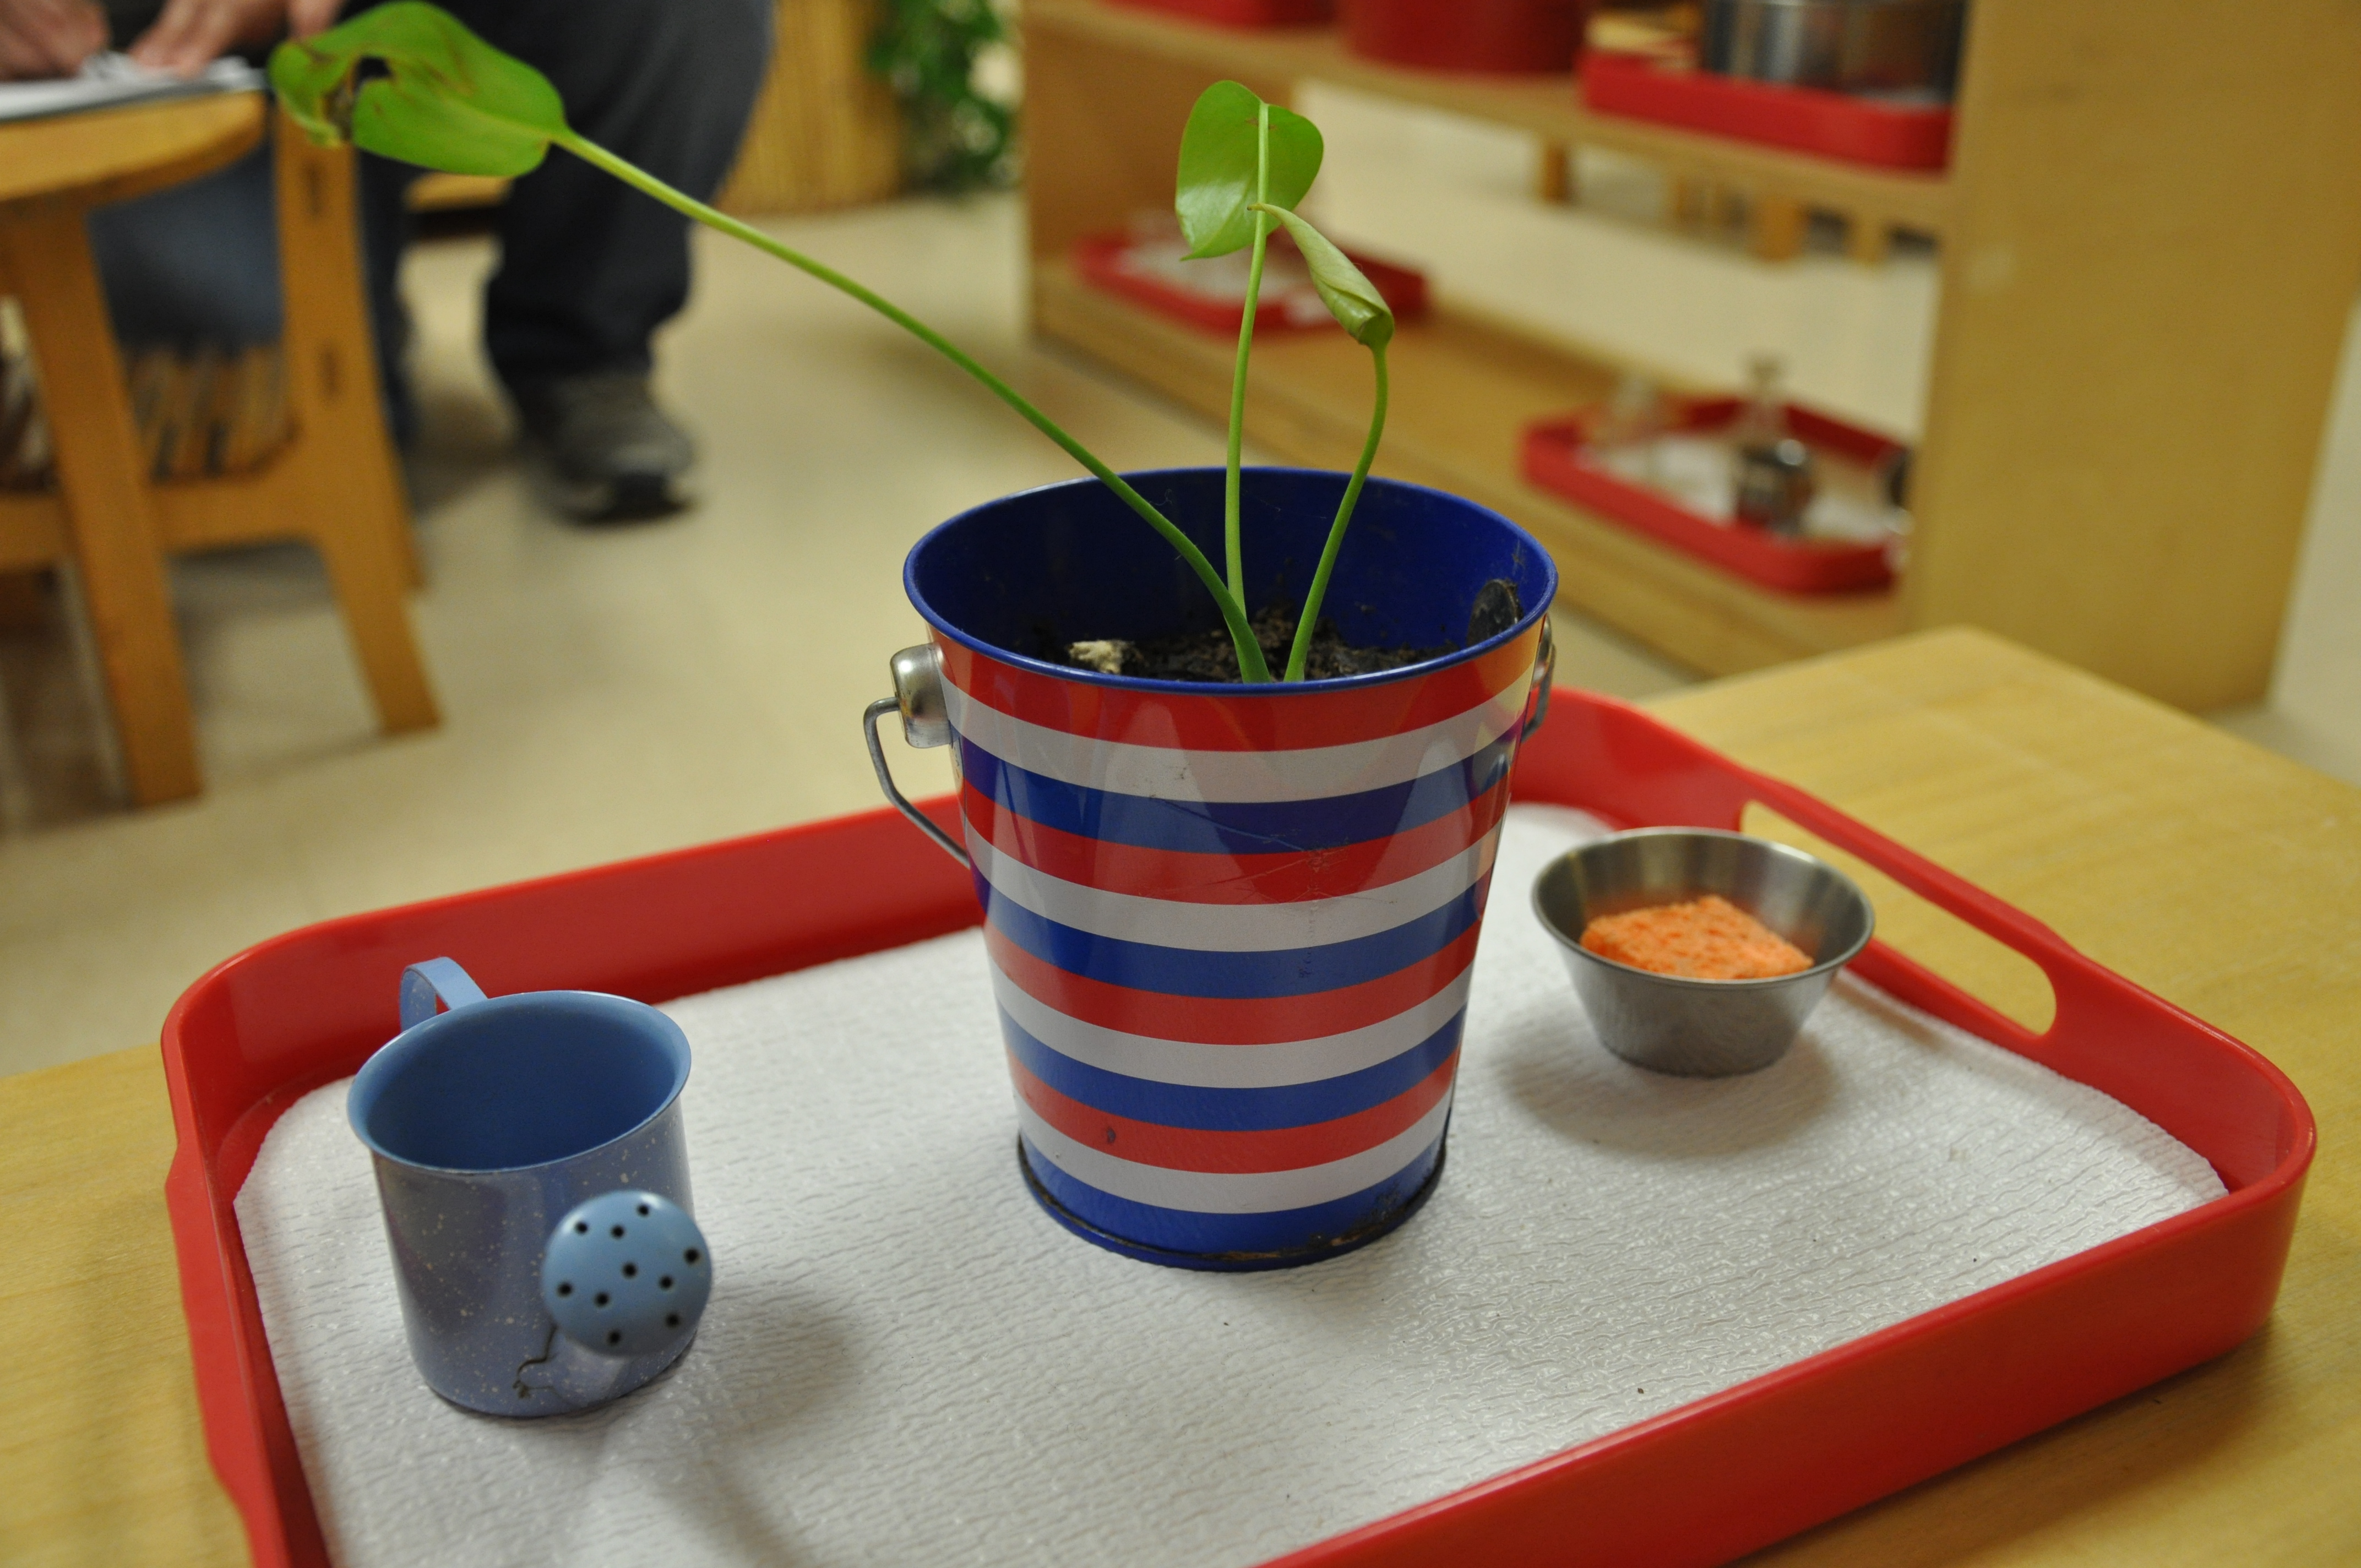 A Montessori Classroom has work at the child's level,easy for them to take and replace. They learn to maintain their own environment.